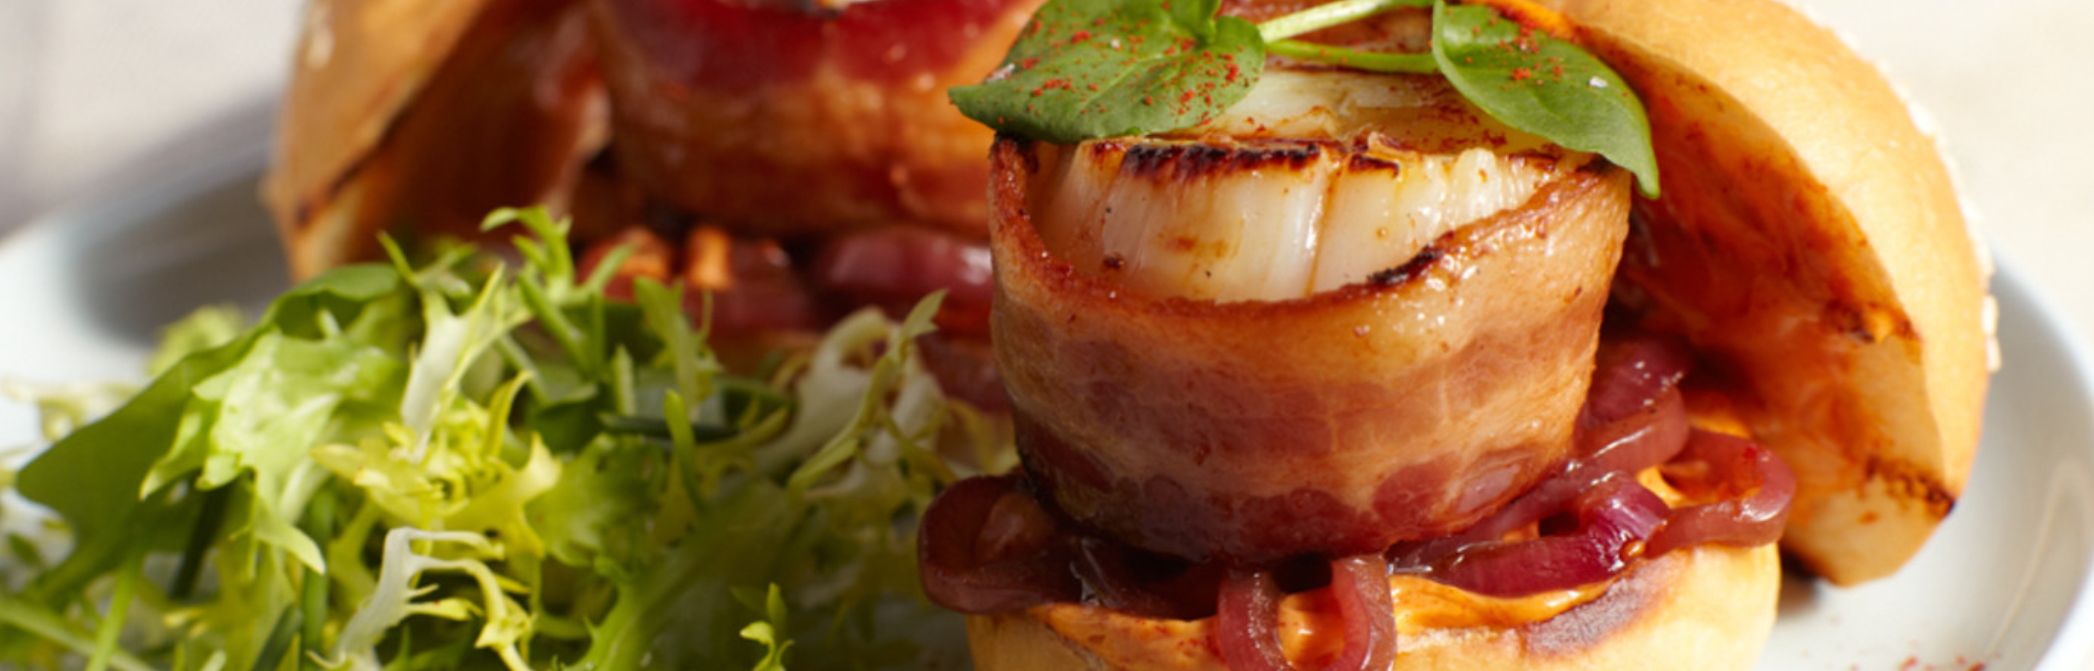 Bacon wrapped scallop sliders- seafood appetizer